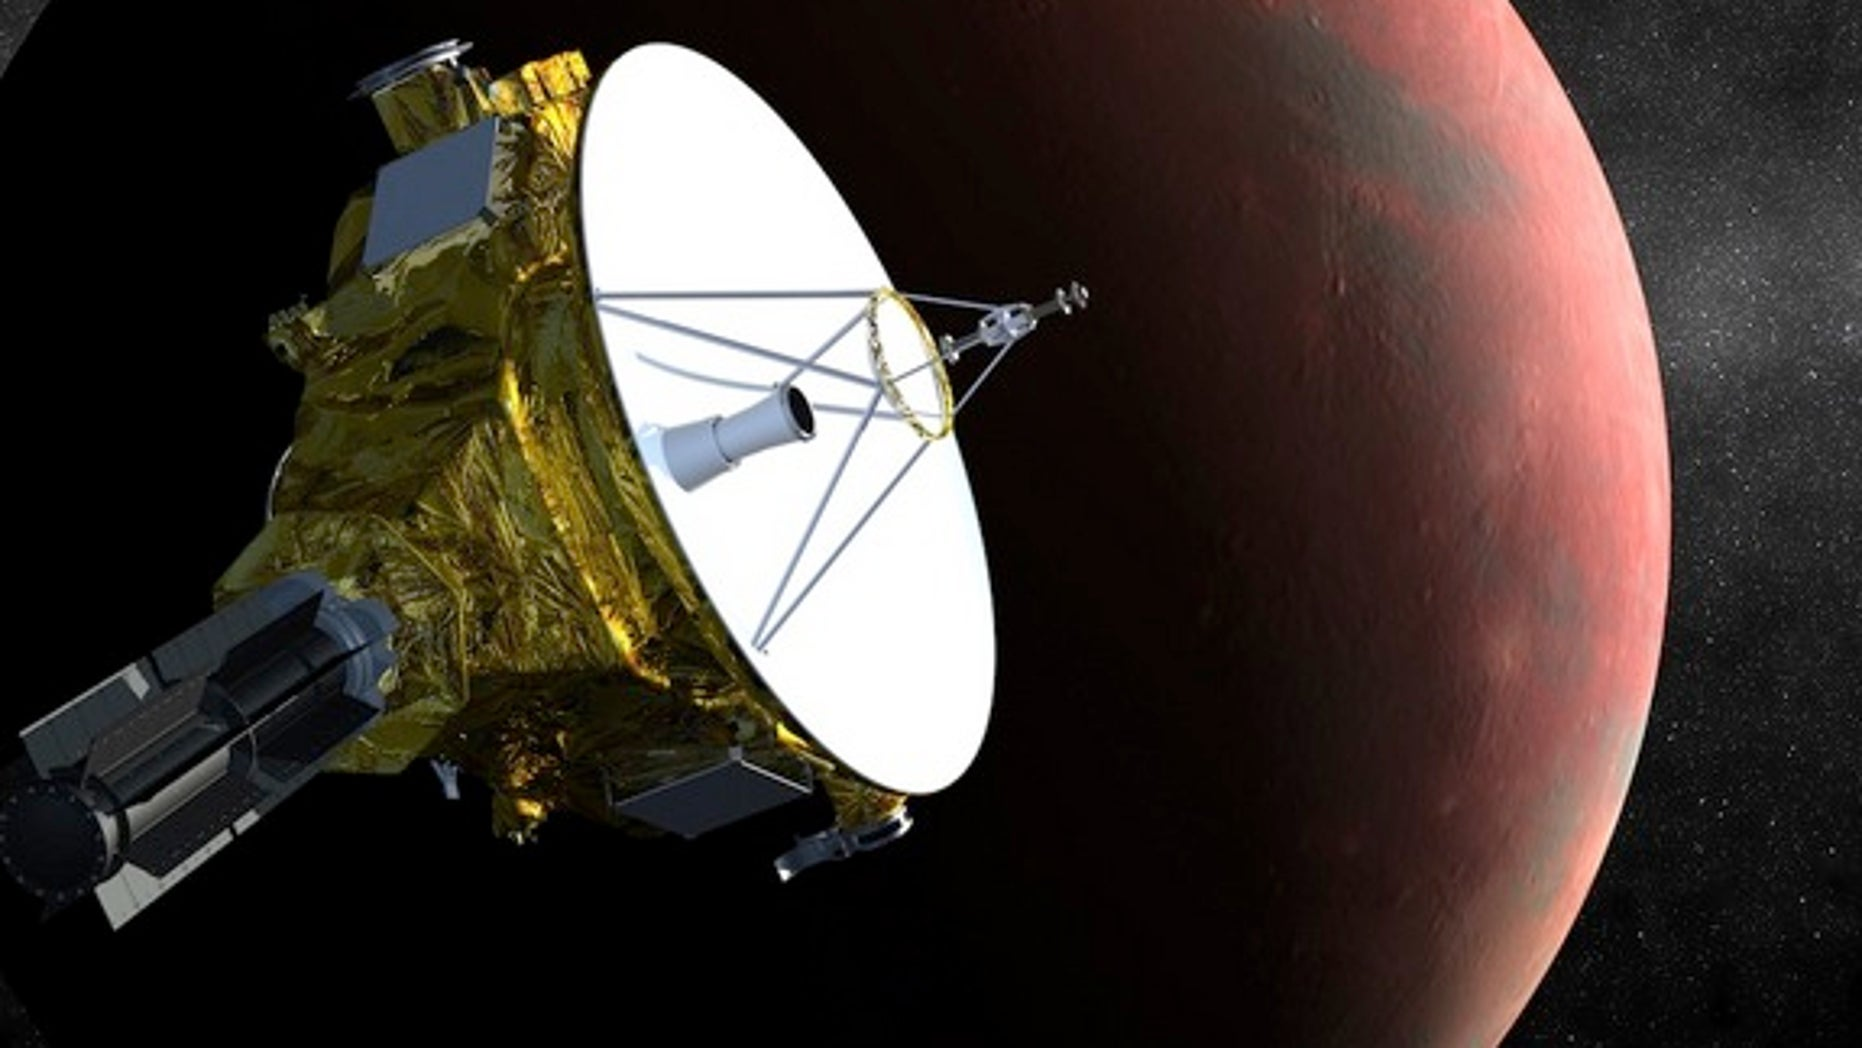 An illustration of the New Horizons spacecraft as it approaches Pluto and its largest moon, Charon.